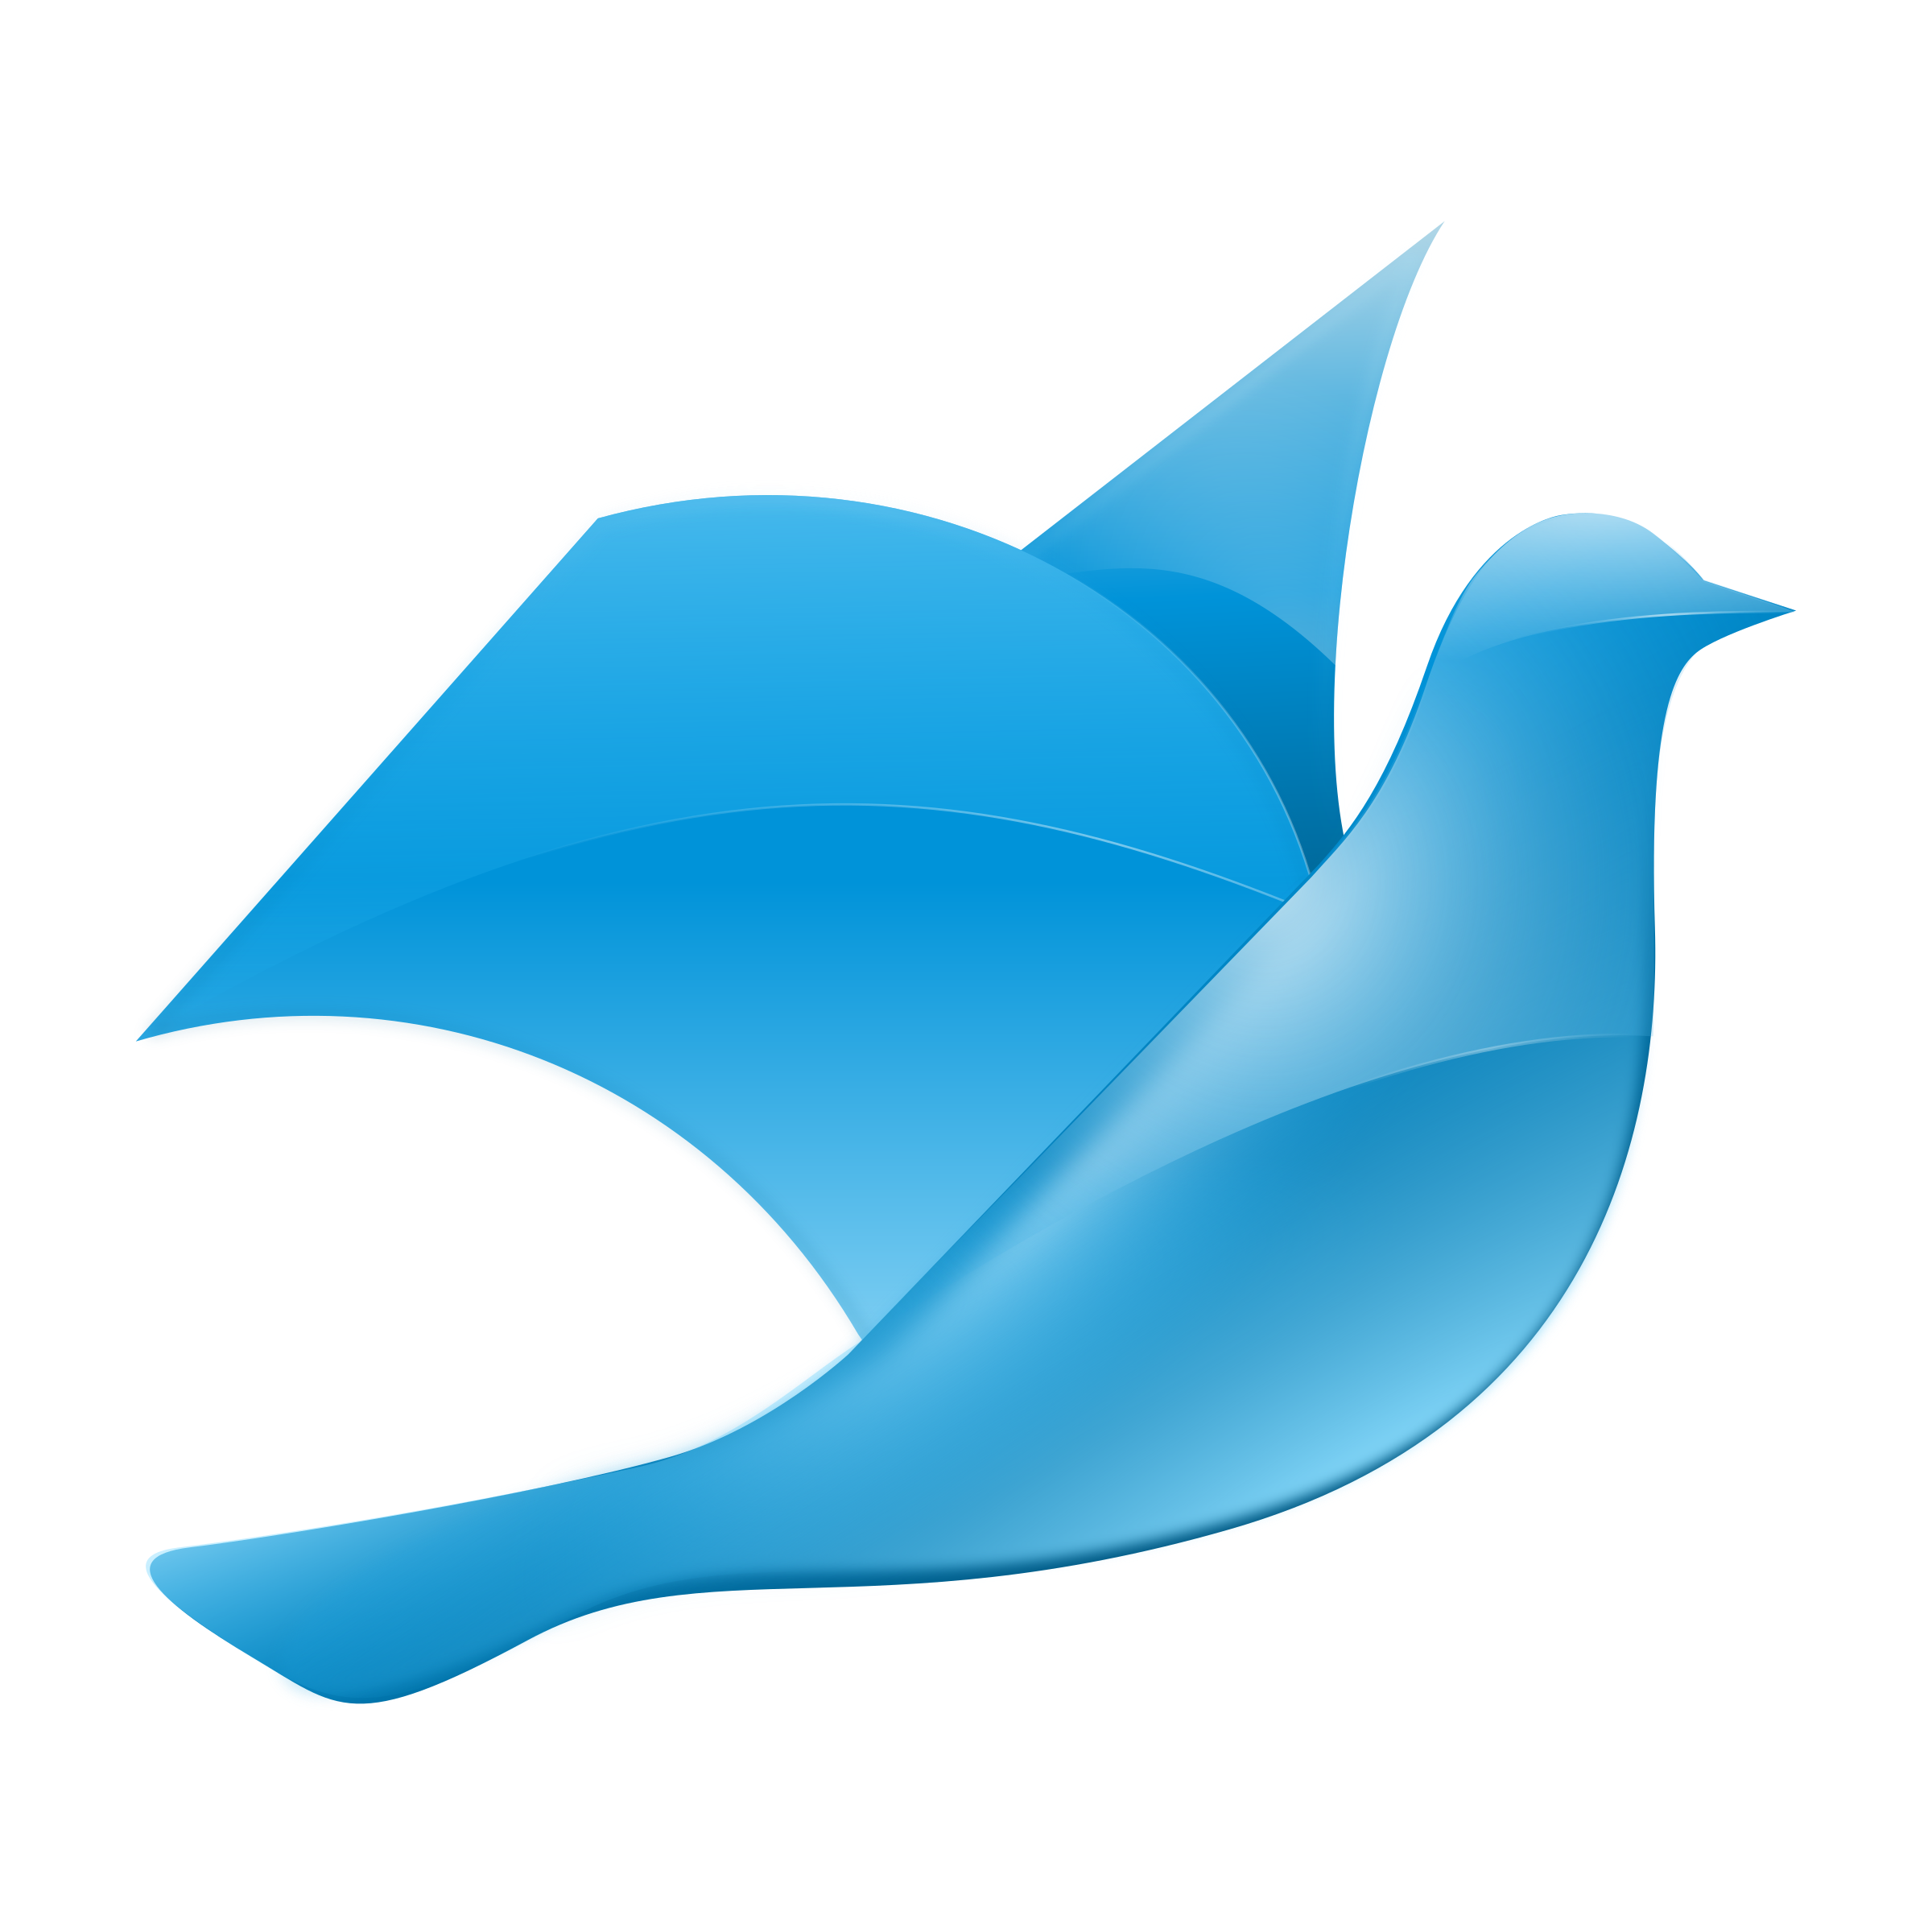 ODF logo icon by Andy